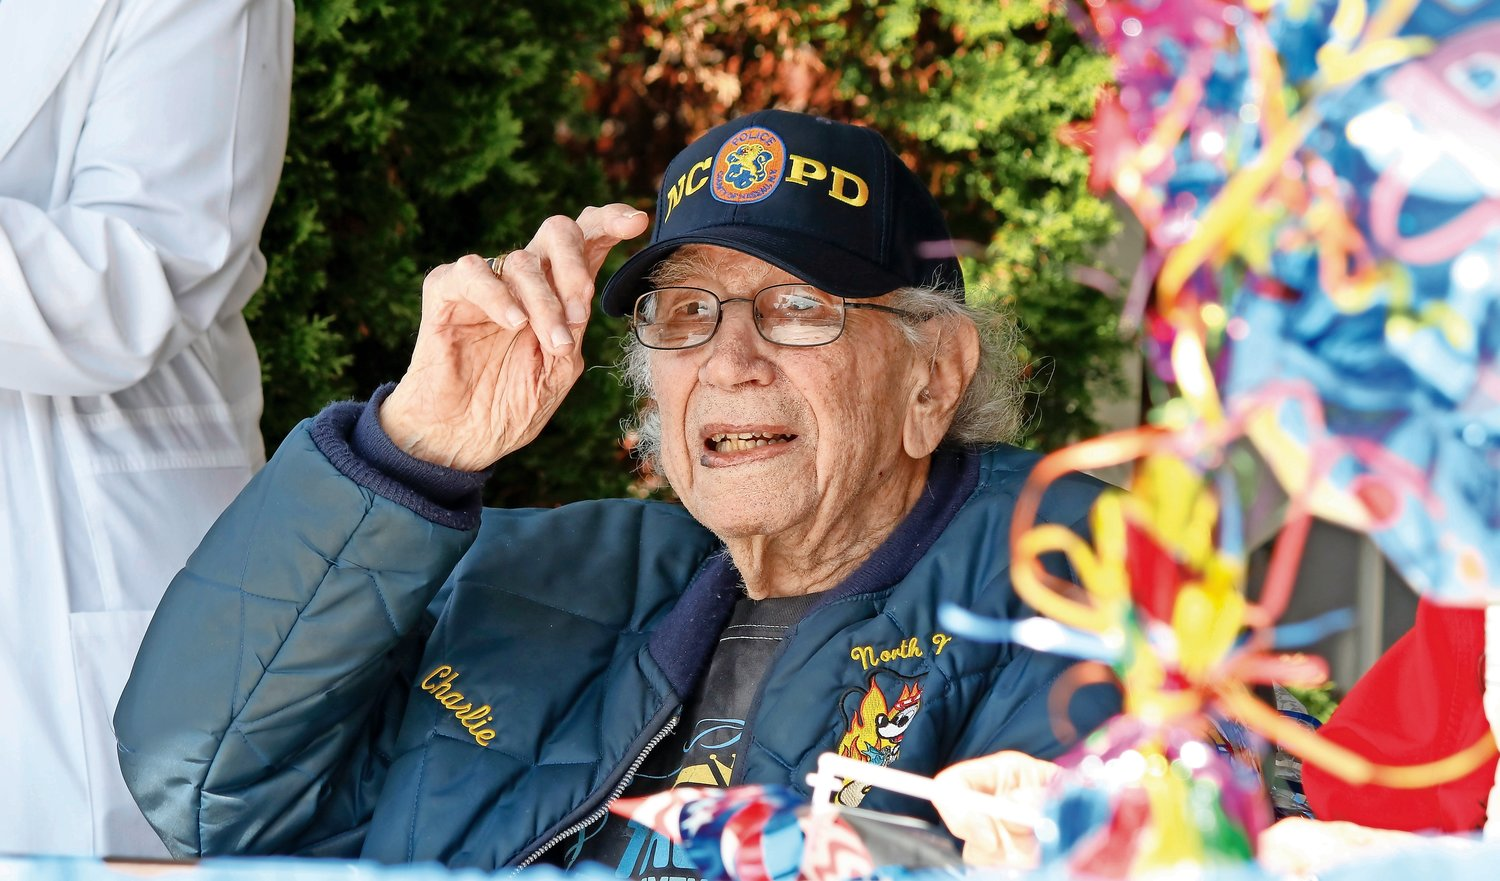 Charles P. Kerns, the highest-ranking World War II veteran in Nassau County, with 34 years of military service, turned 100 on May 29.